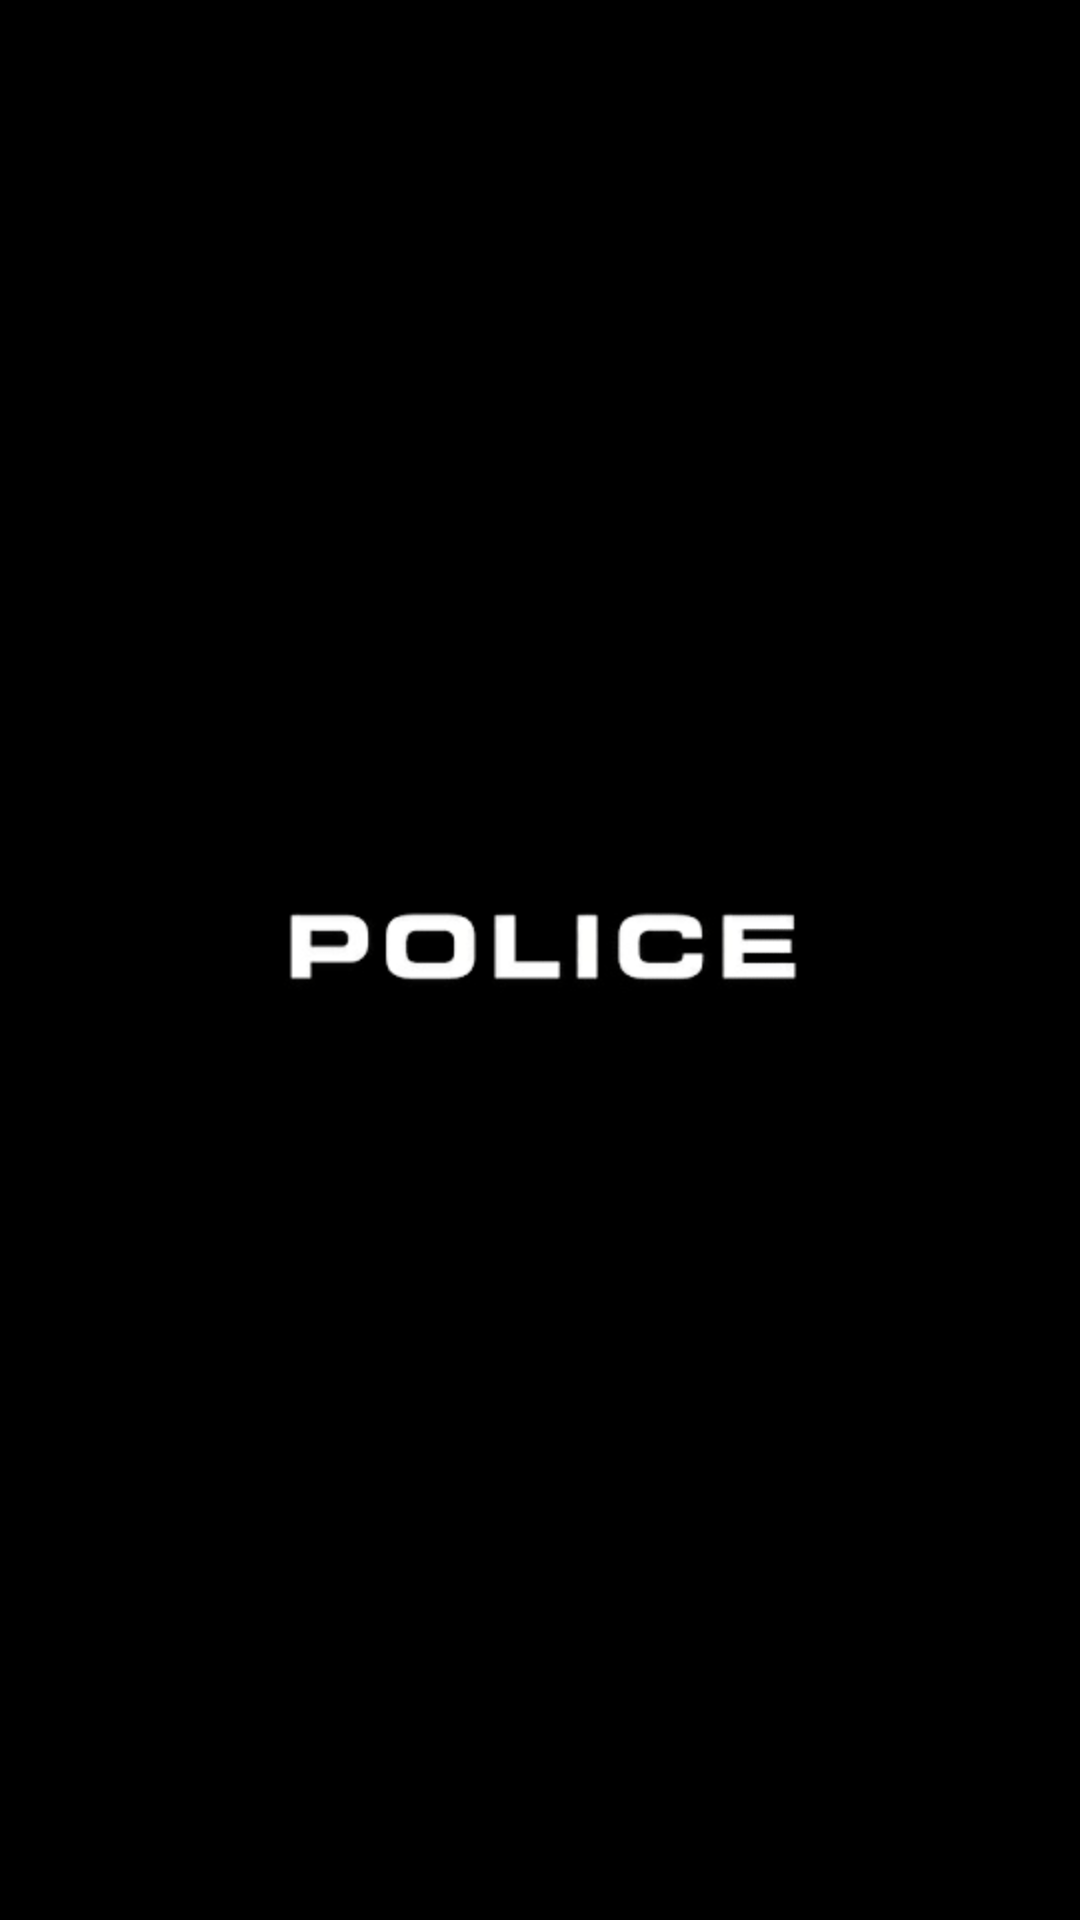 Police Iphone Wallpapers Top Free Police Iphone Backgrounds Wallpaperaccess